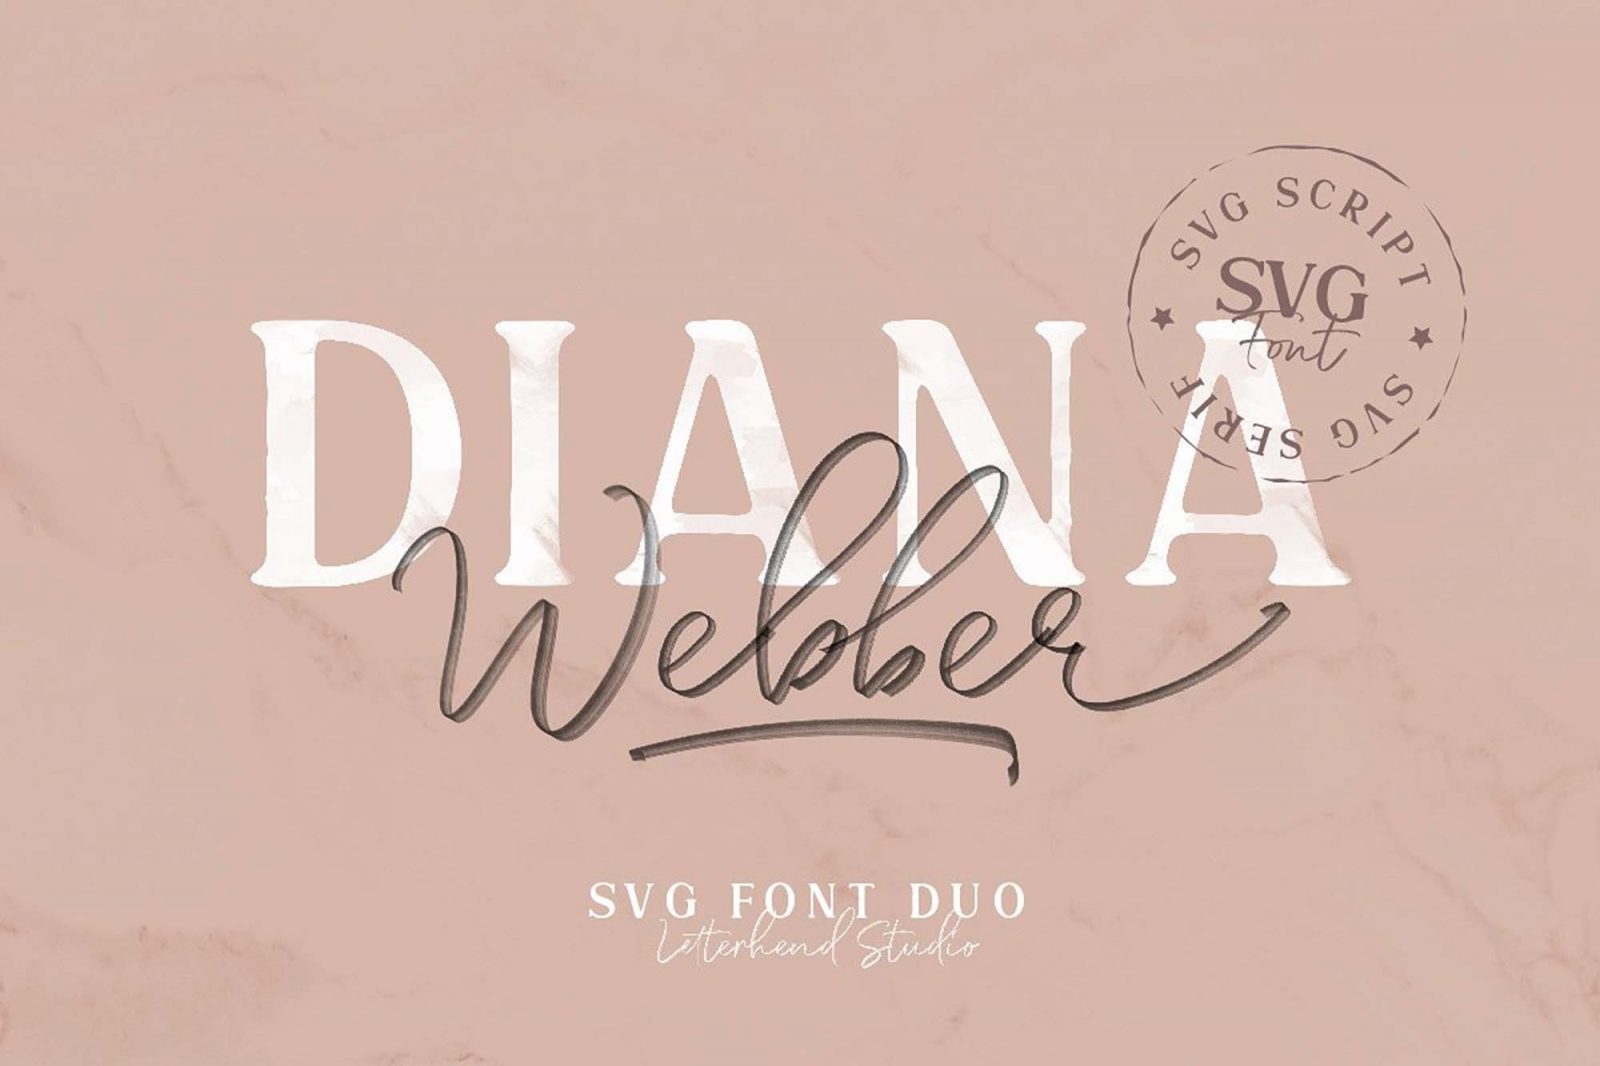 Free Diana Webber Font Duo (SVG)